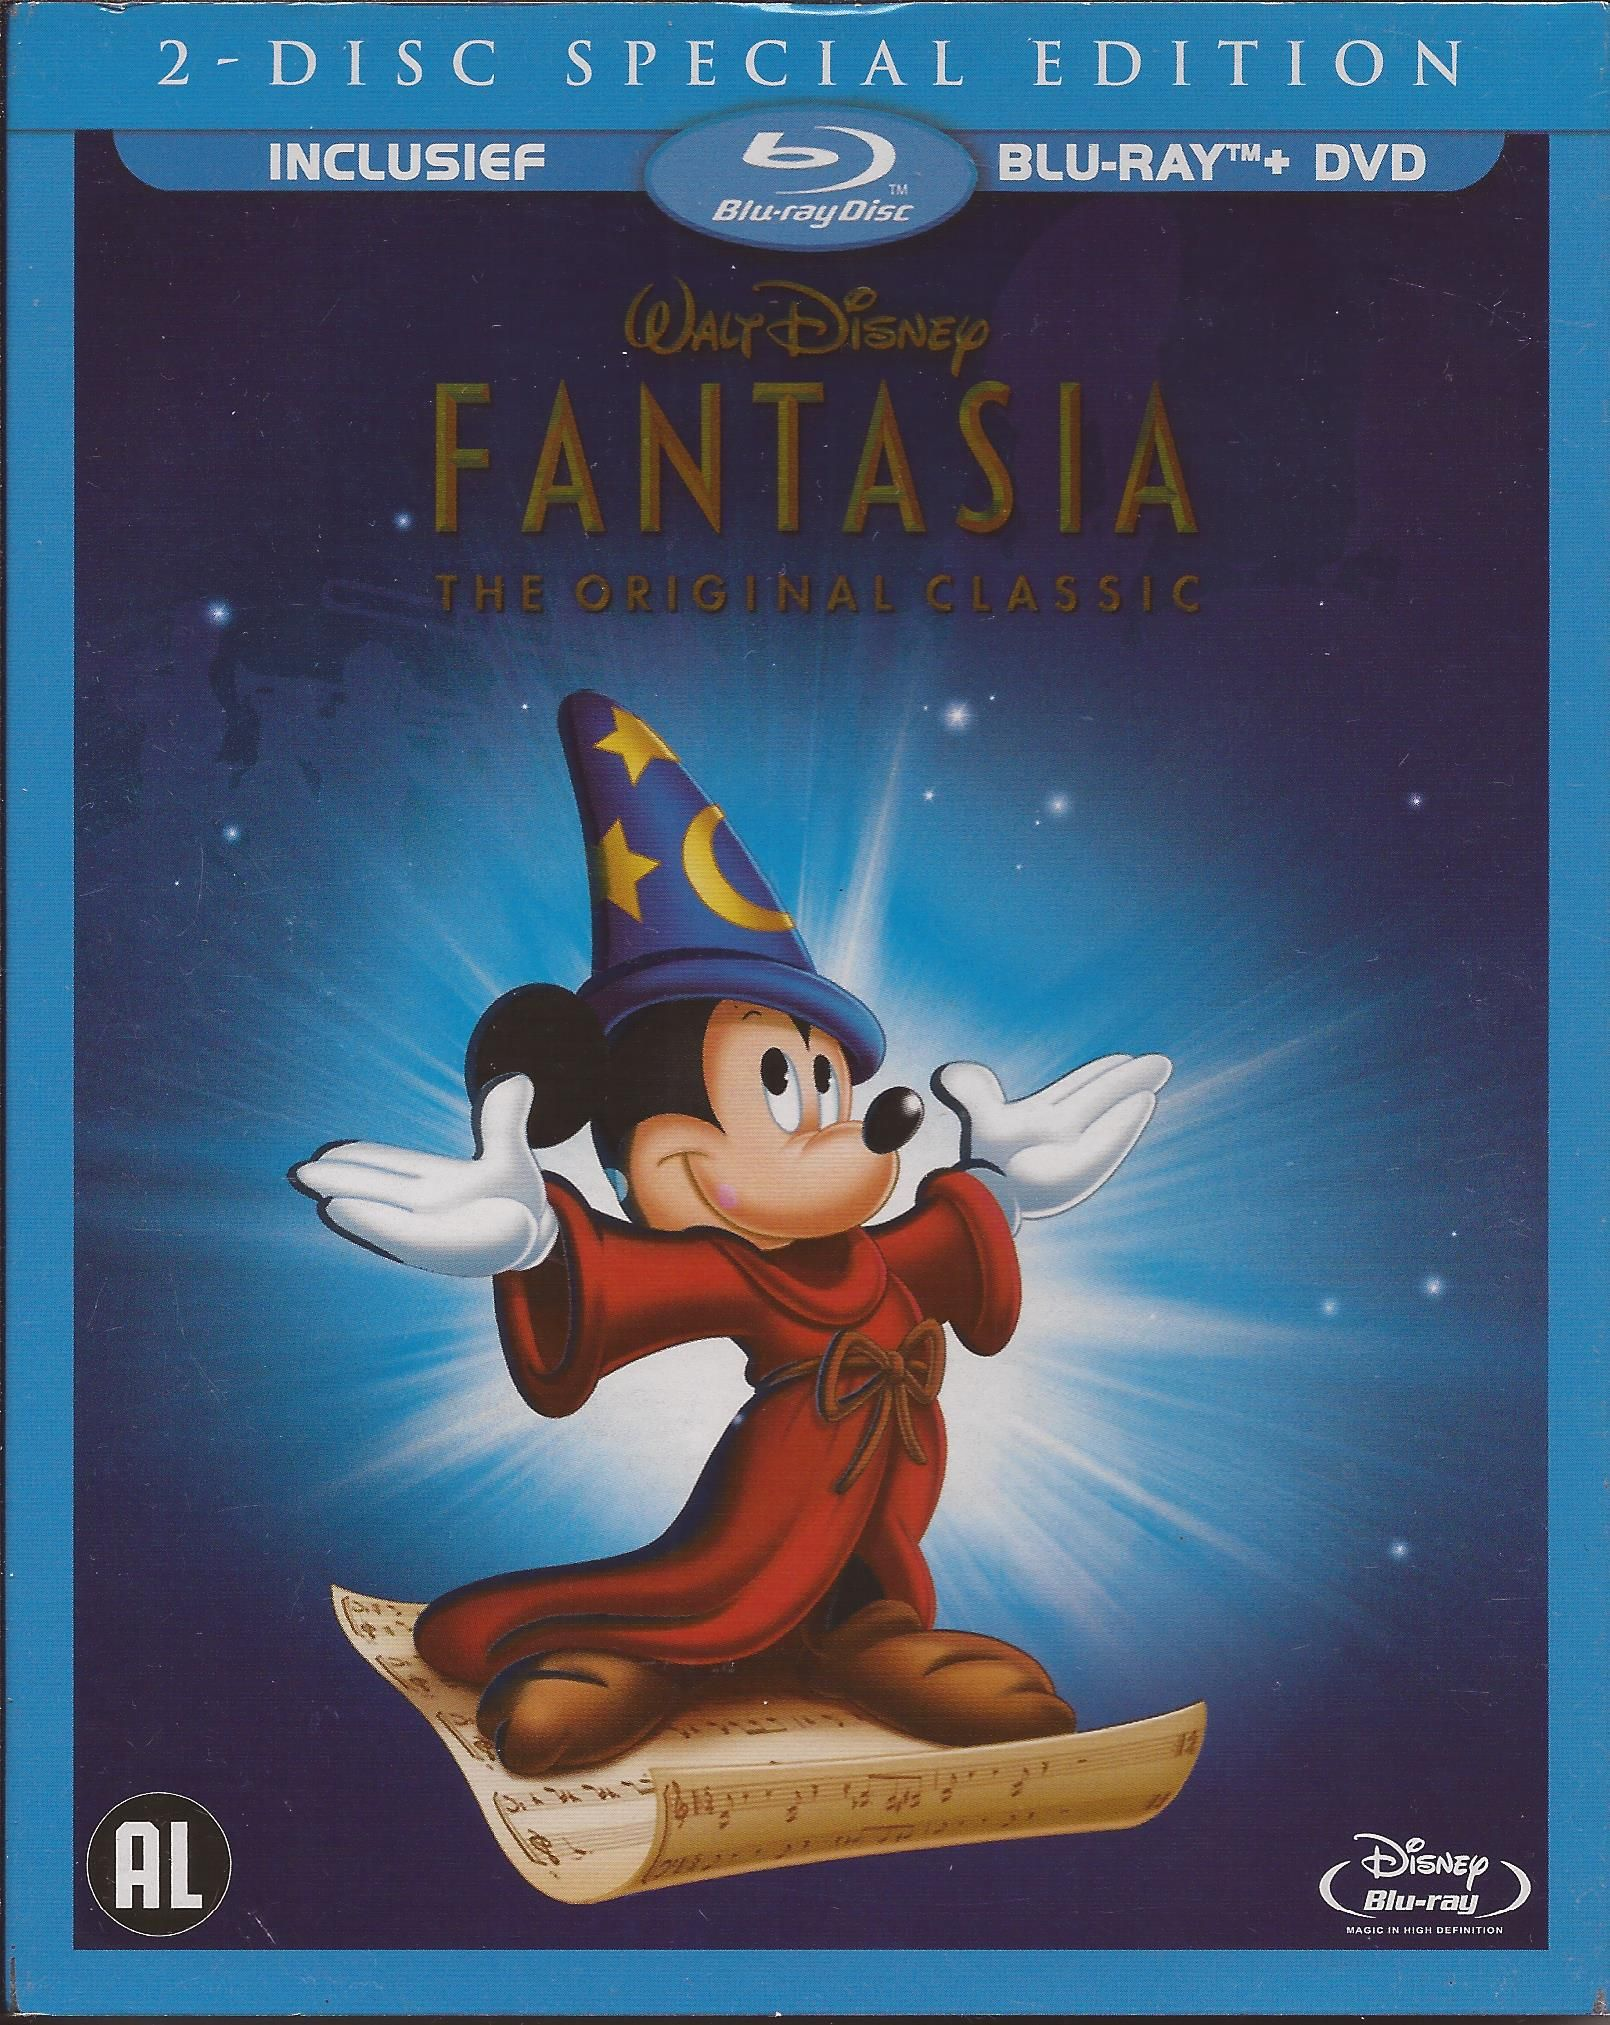 Ds 003 1940 Fantasia 2 Disc Special Edition